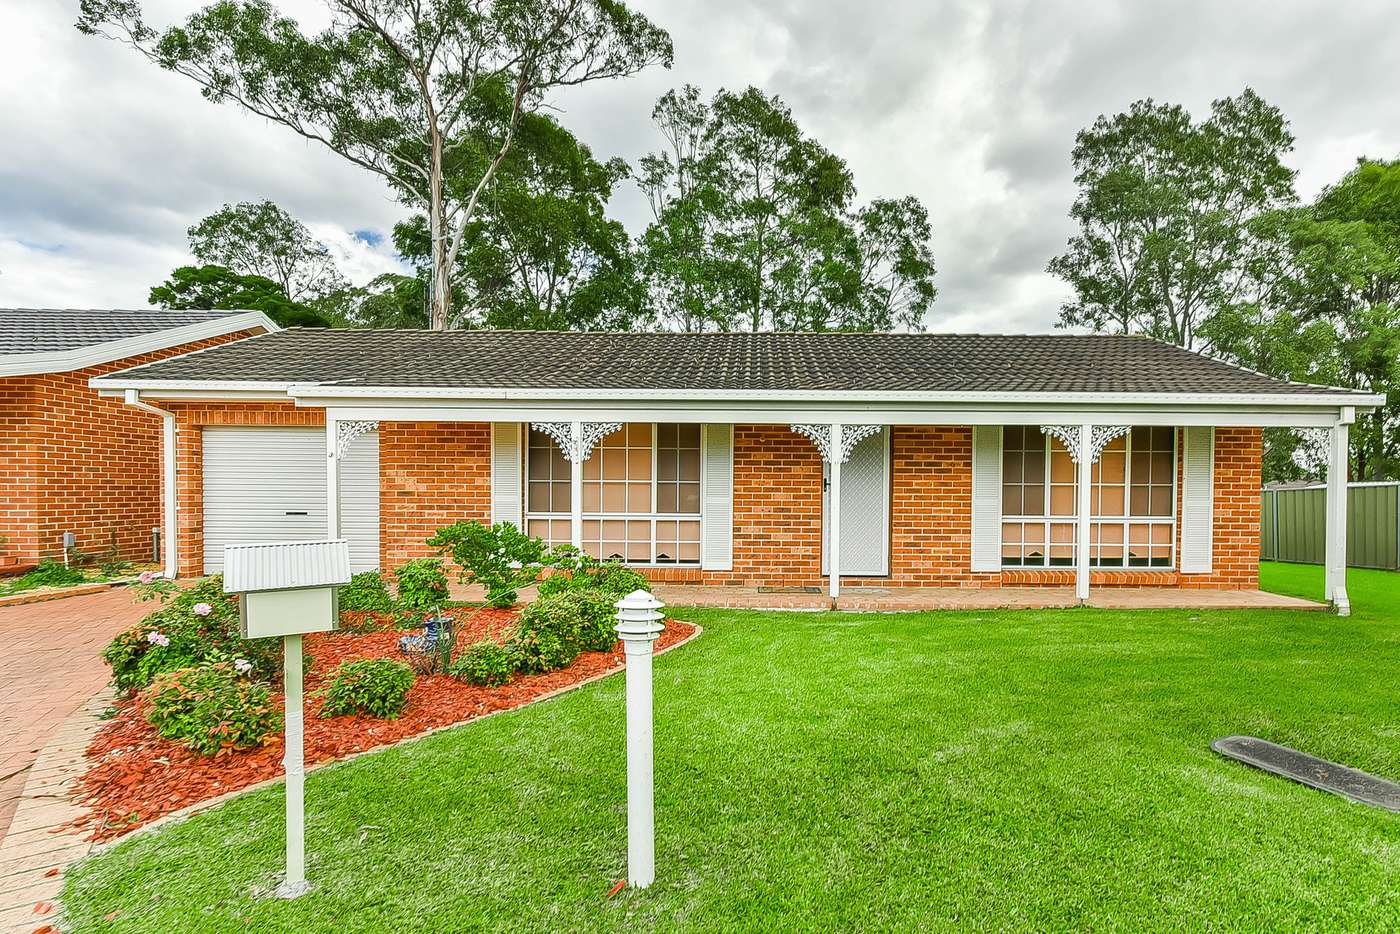 Main view of Homely villa listing, 3/25-33 Abelia Street, Tahmoor NSW 2573